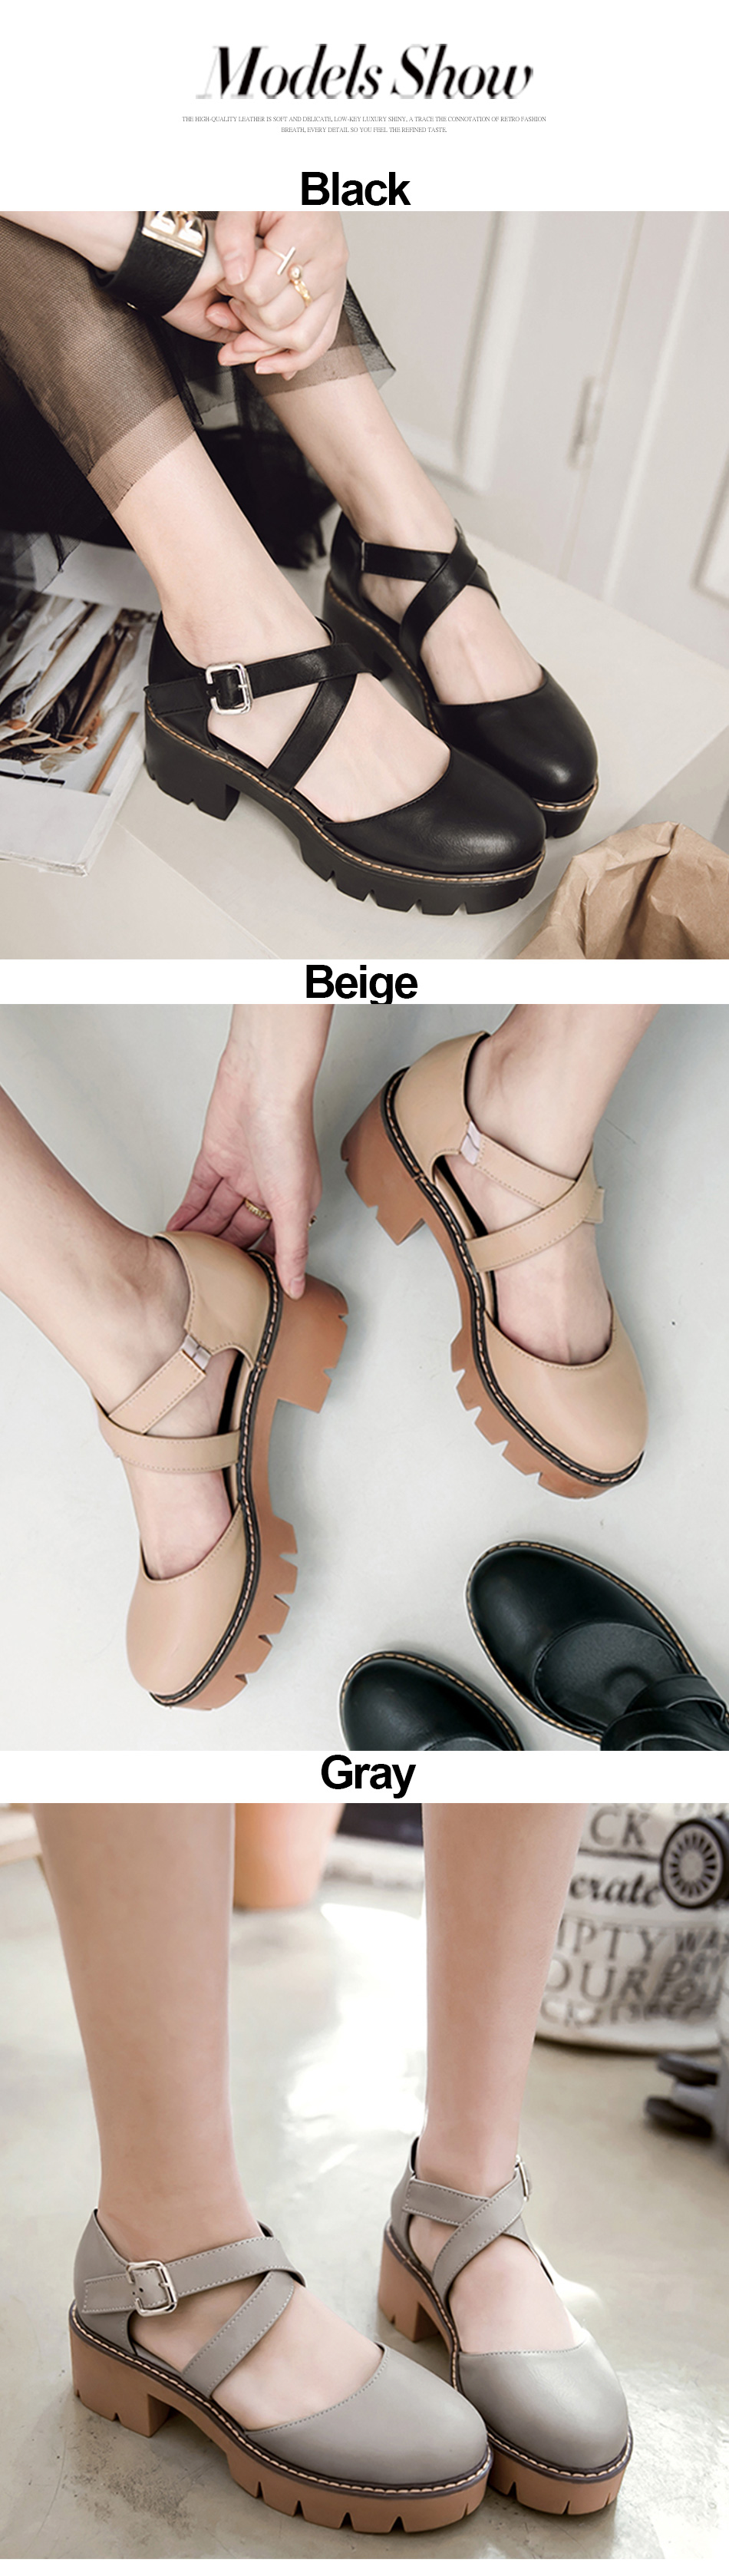 f26eb1742df Gdgydh 2019 New Summer Women Sandals Chunky Heel Round Toe Cut-outs Sweet  Gladiator Ladies Shoes Platform Heels Plus Size 43